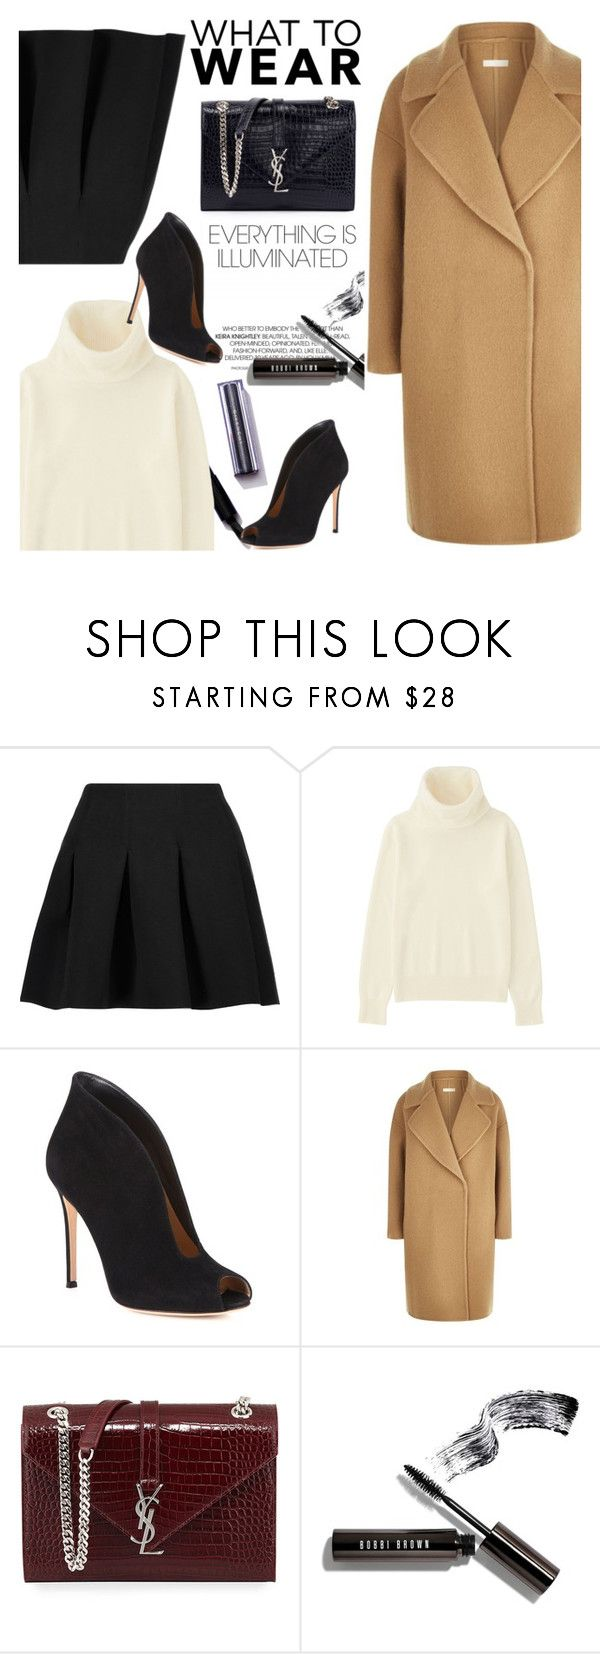 """""""03/01/17"""" by miramiclairs ❤ liked on Polyvore featuring T By Alexander Wang, Uniqlo, Gianvito Rossi, MaxMara, Yves Saint Laurent and Bobbi Brown Cosmetics"""